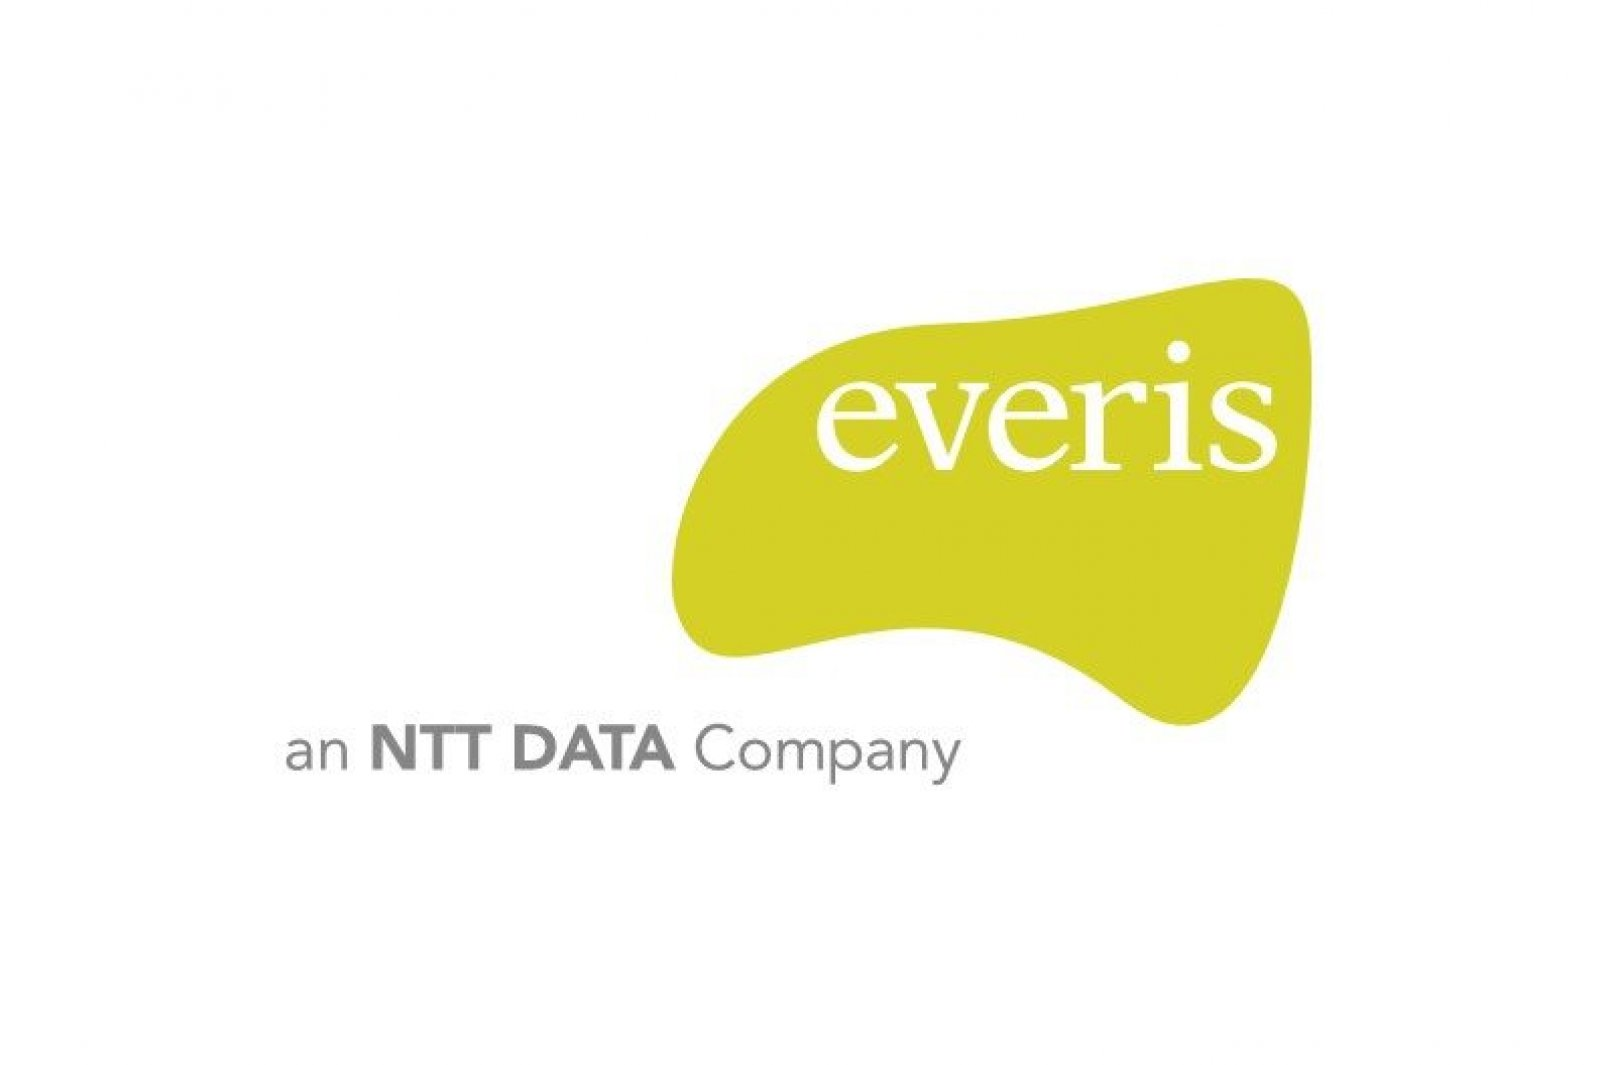 Logo everis Italia